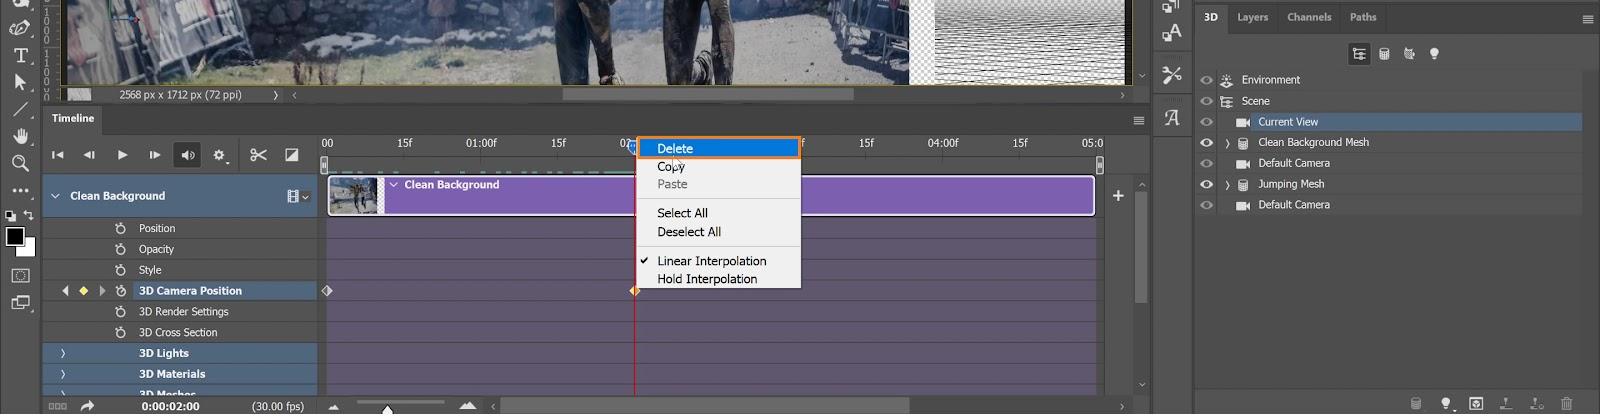 To delete a keyframe, just right-click on a keyframe and select Delete